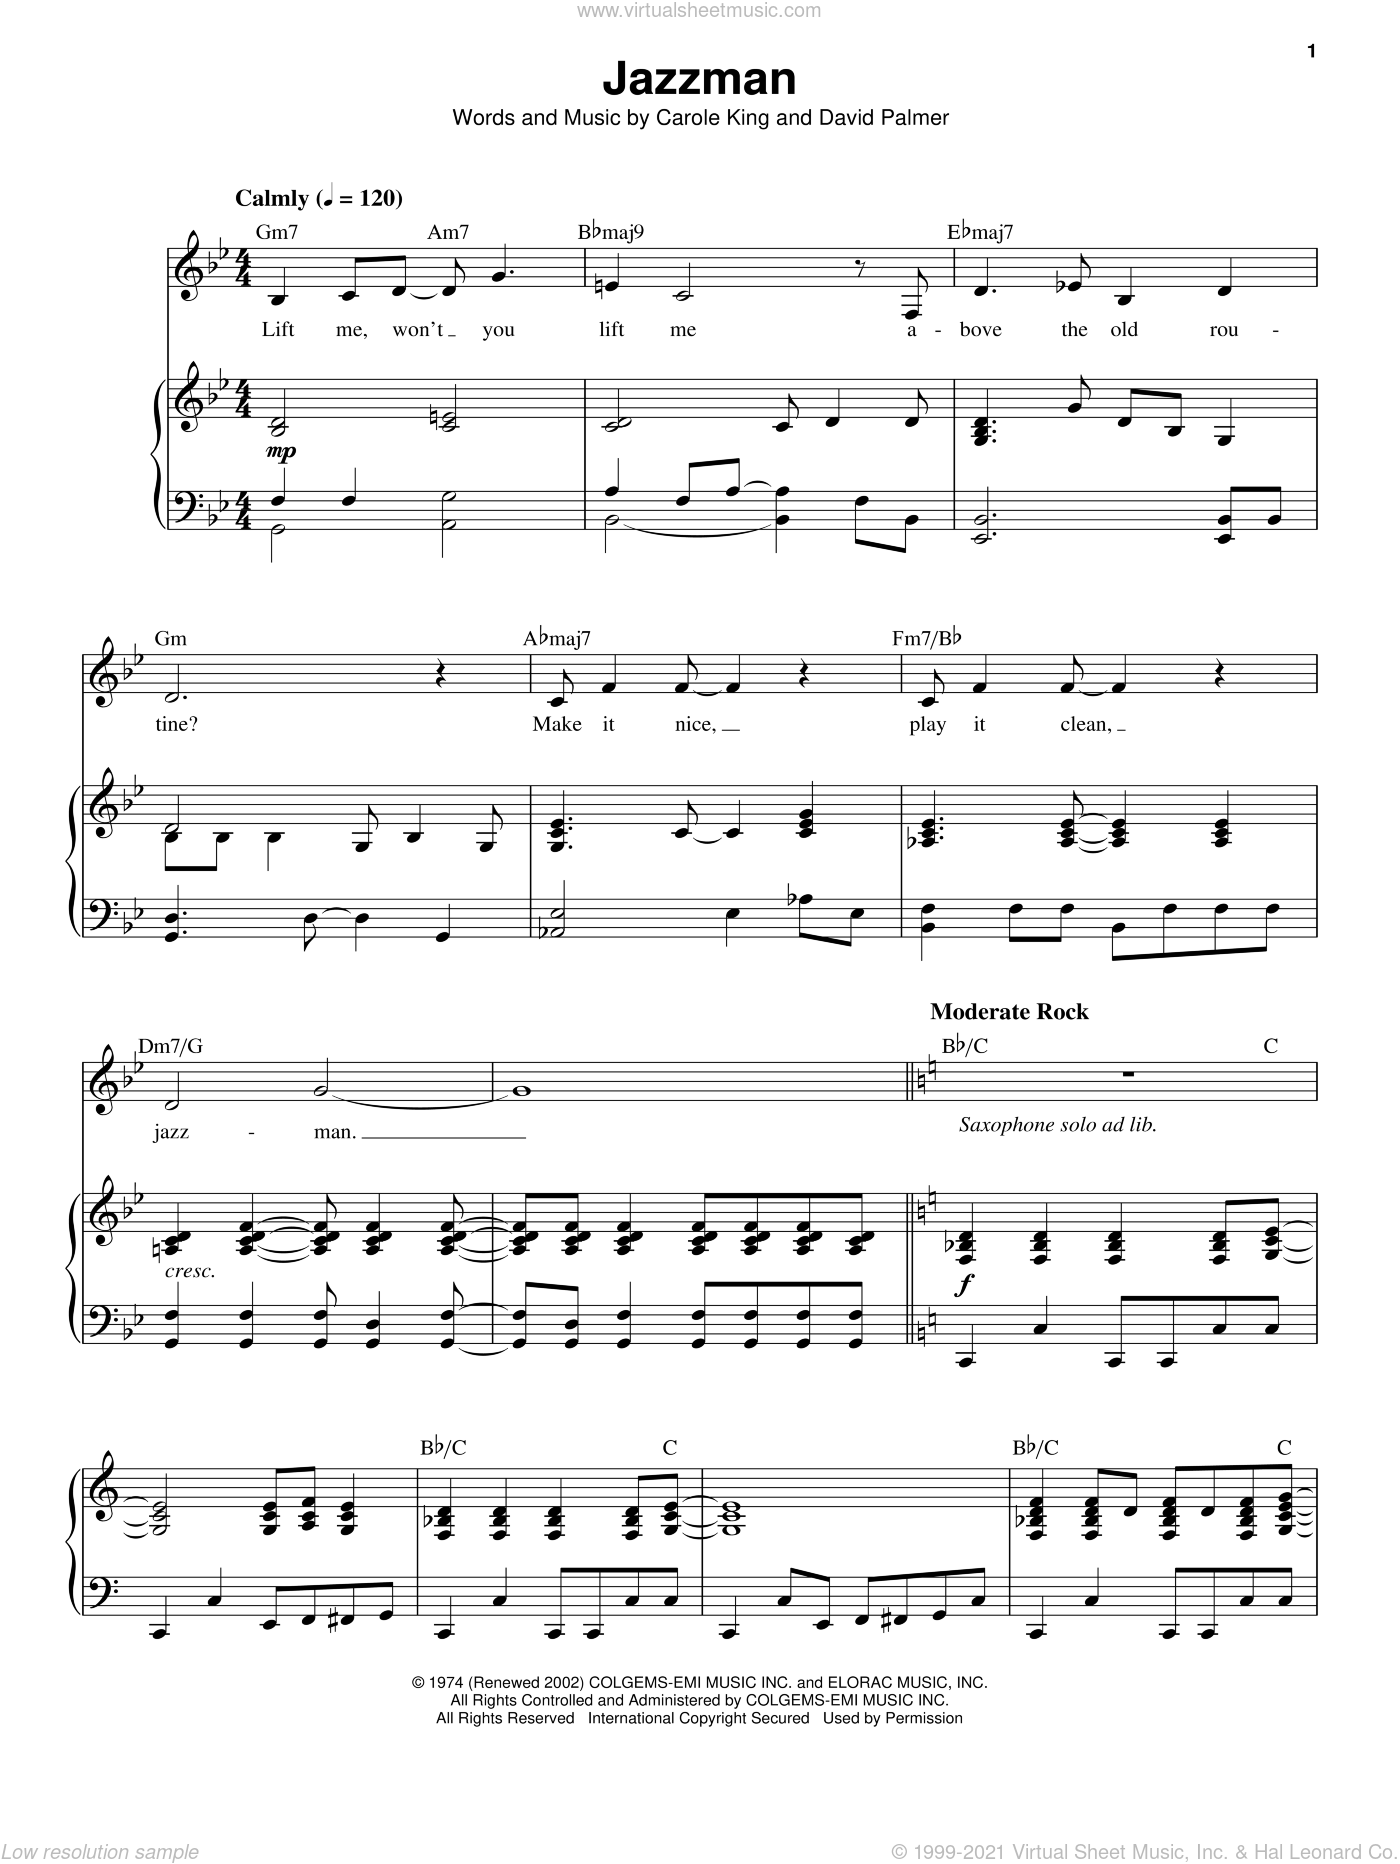 Jazzman sheet music for voice and piano by Carole King and David Palmer, intermediate skill level